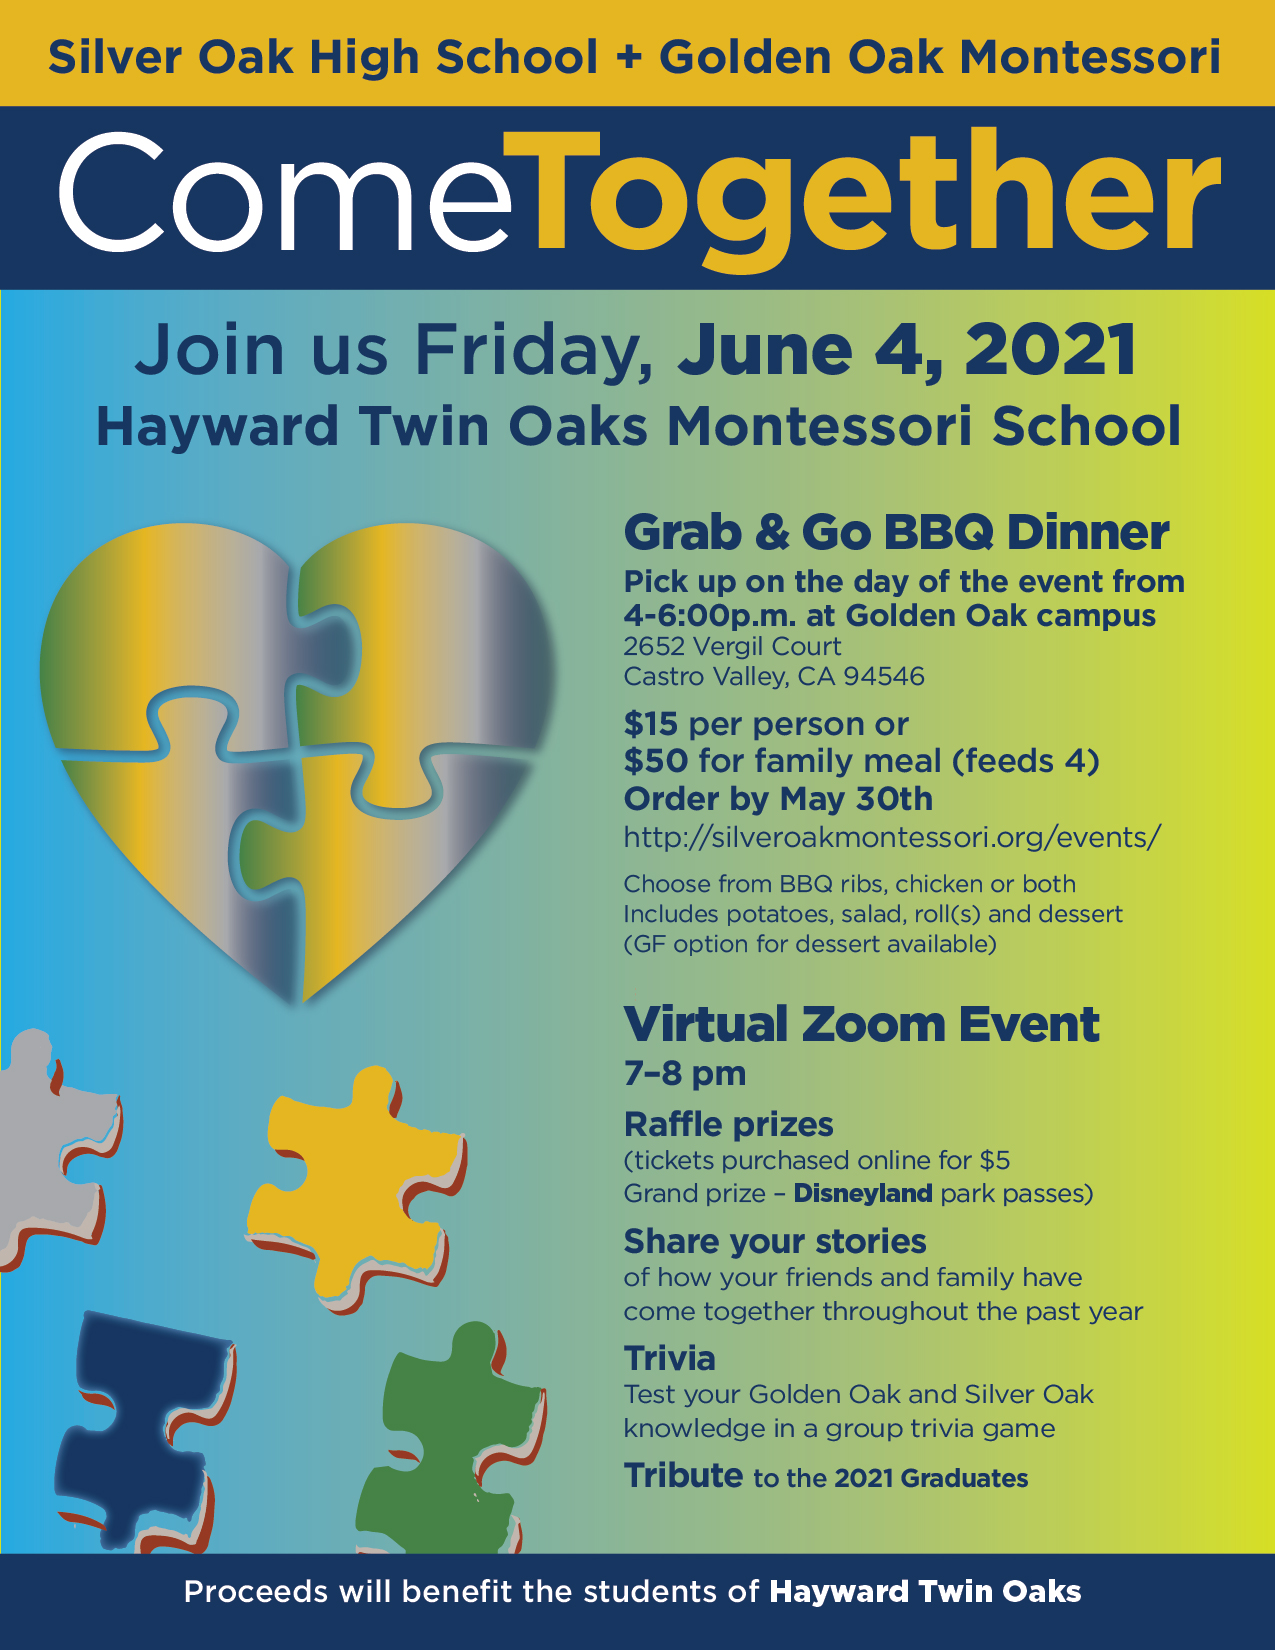 Come Together event, June 4th 2021